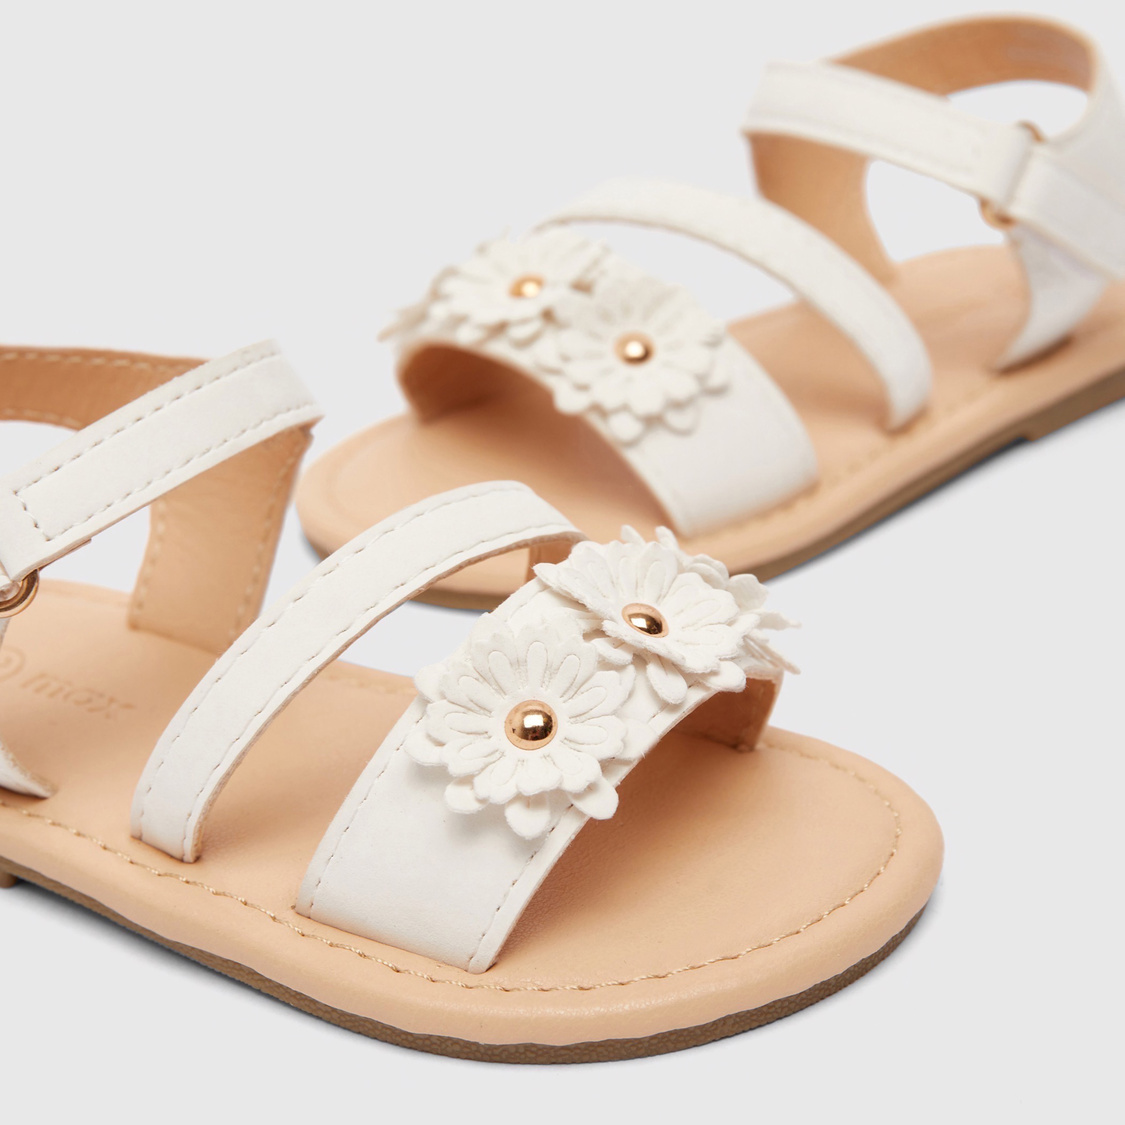 Floral Embellished Sandals with Hook and Loop Closure